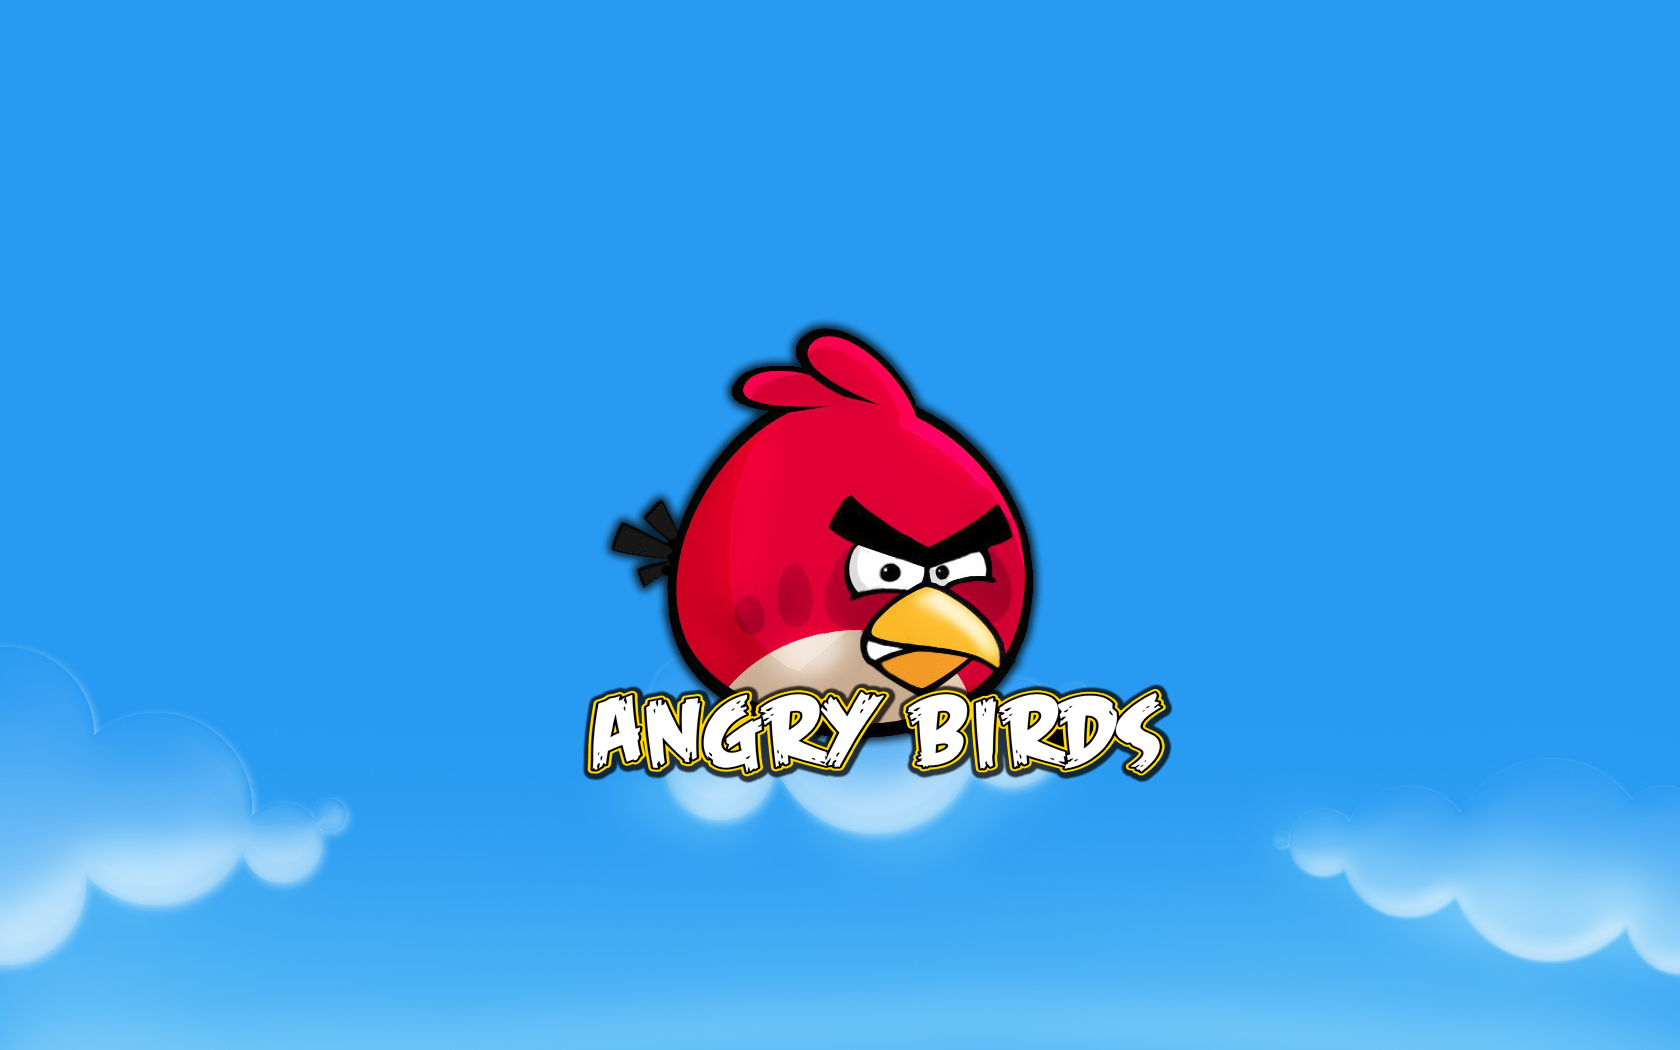 Go and get spaced out with these updated angry birds games voltagebd Gallery